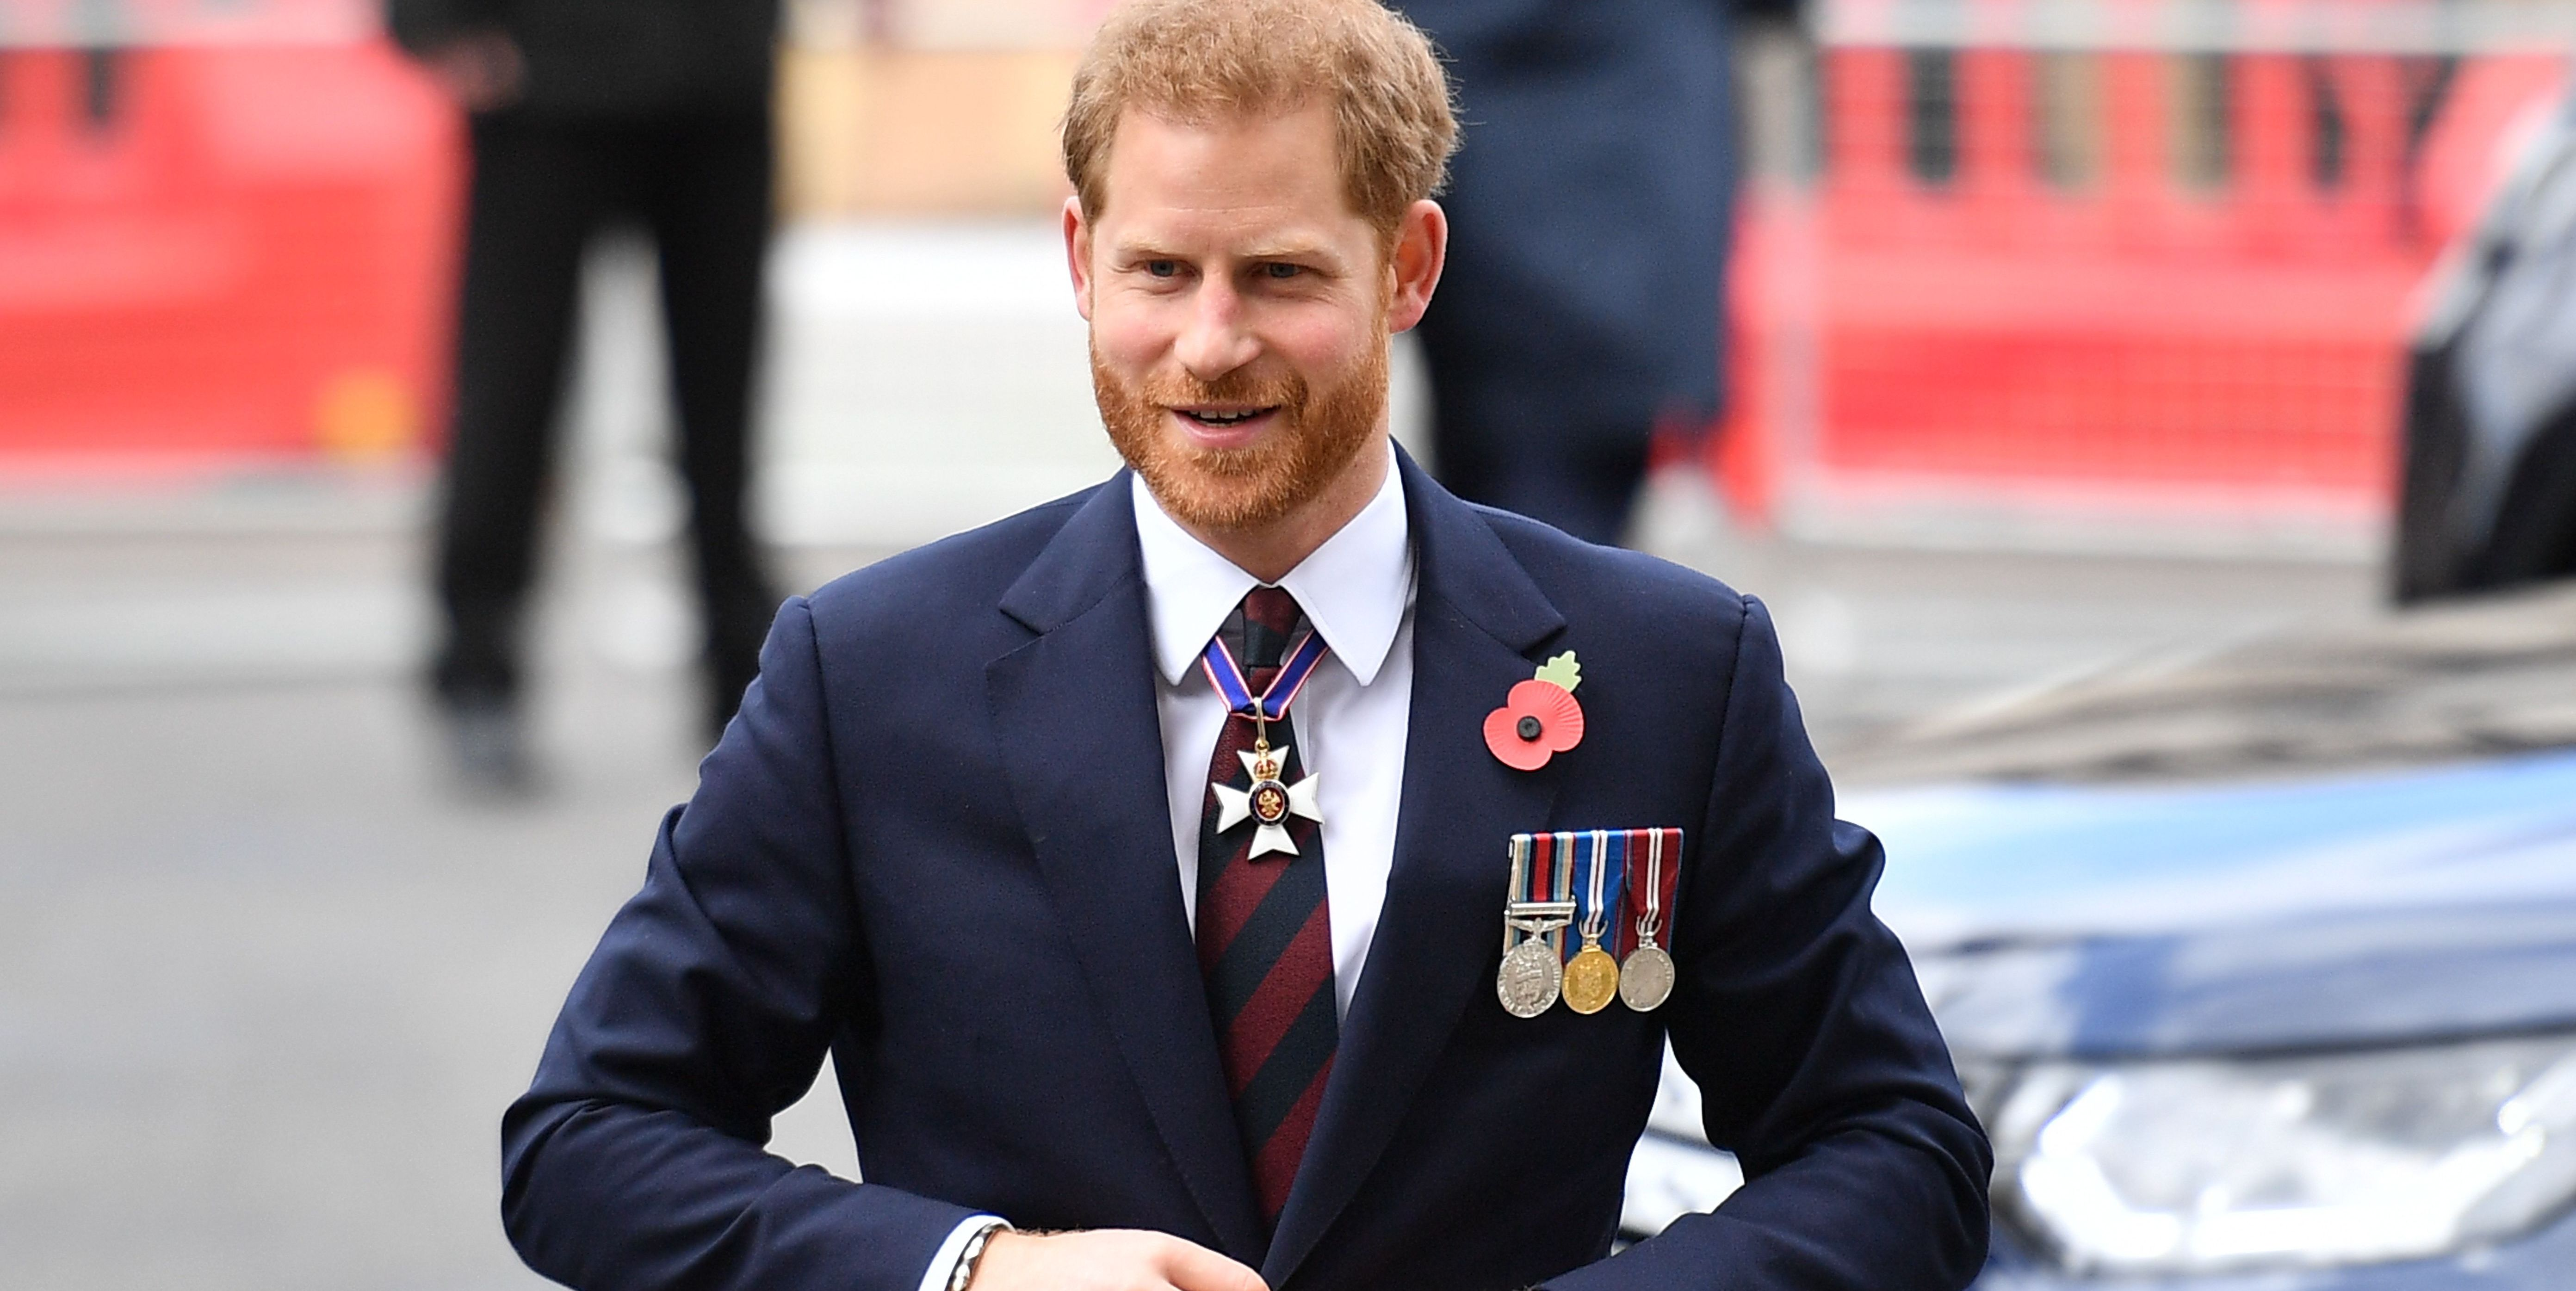 Prince Harry Basically Just Confirmed That Meghan Markle Isn't in Labor Yet